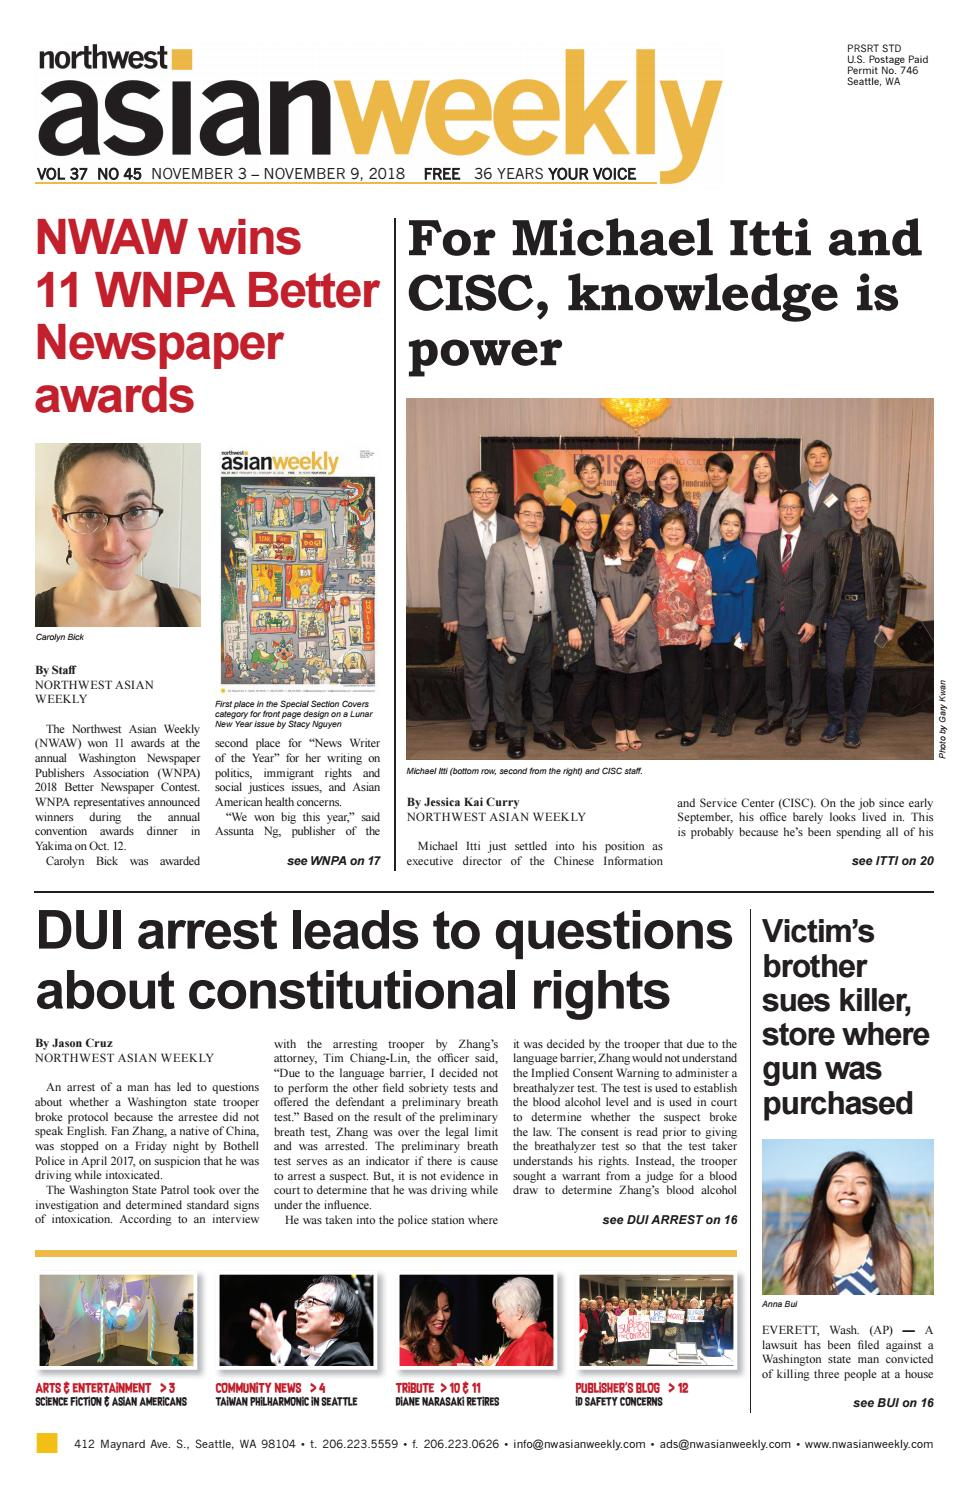 VOL 37 NO 45 | NOVEMBER 3 - NOVEMBER 9, 2018 by Northwest Asian Weekly -  issuu